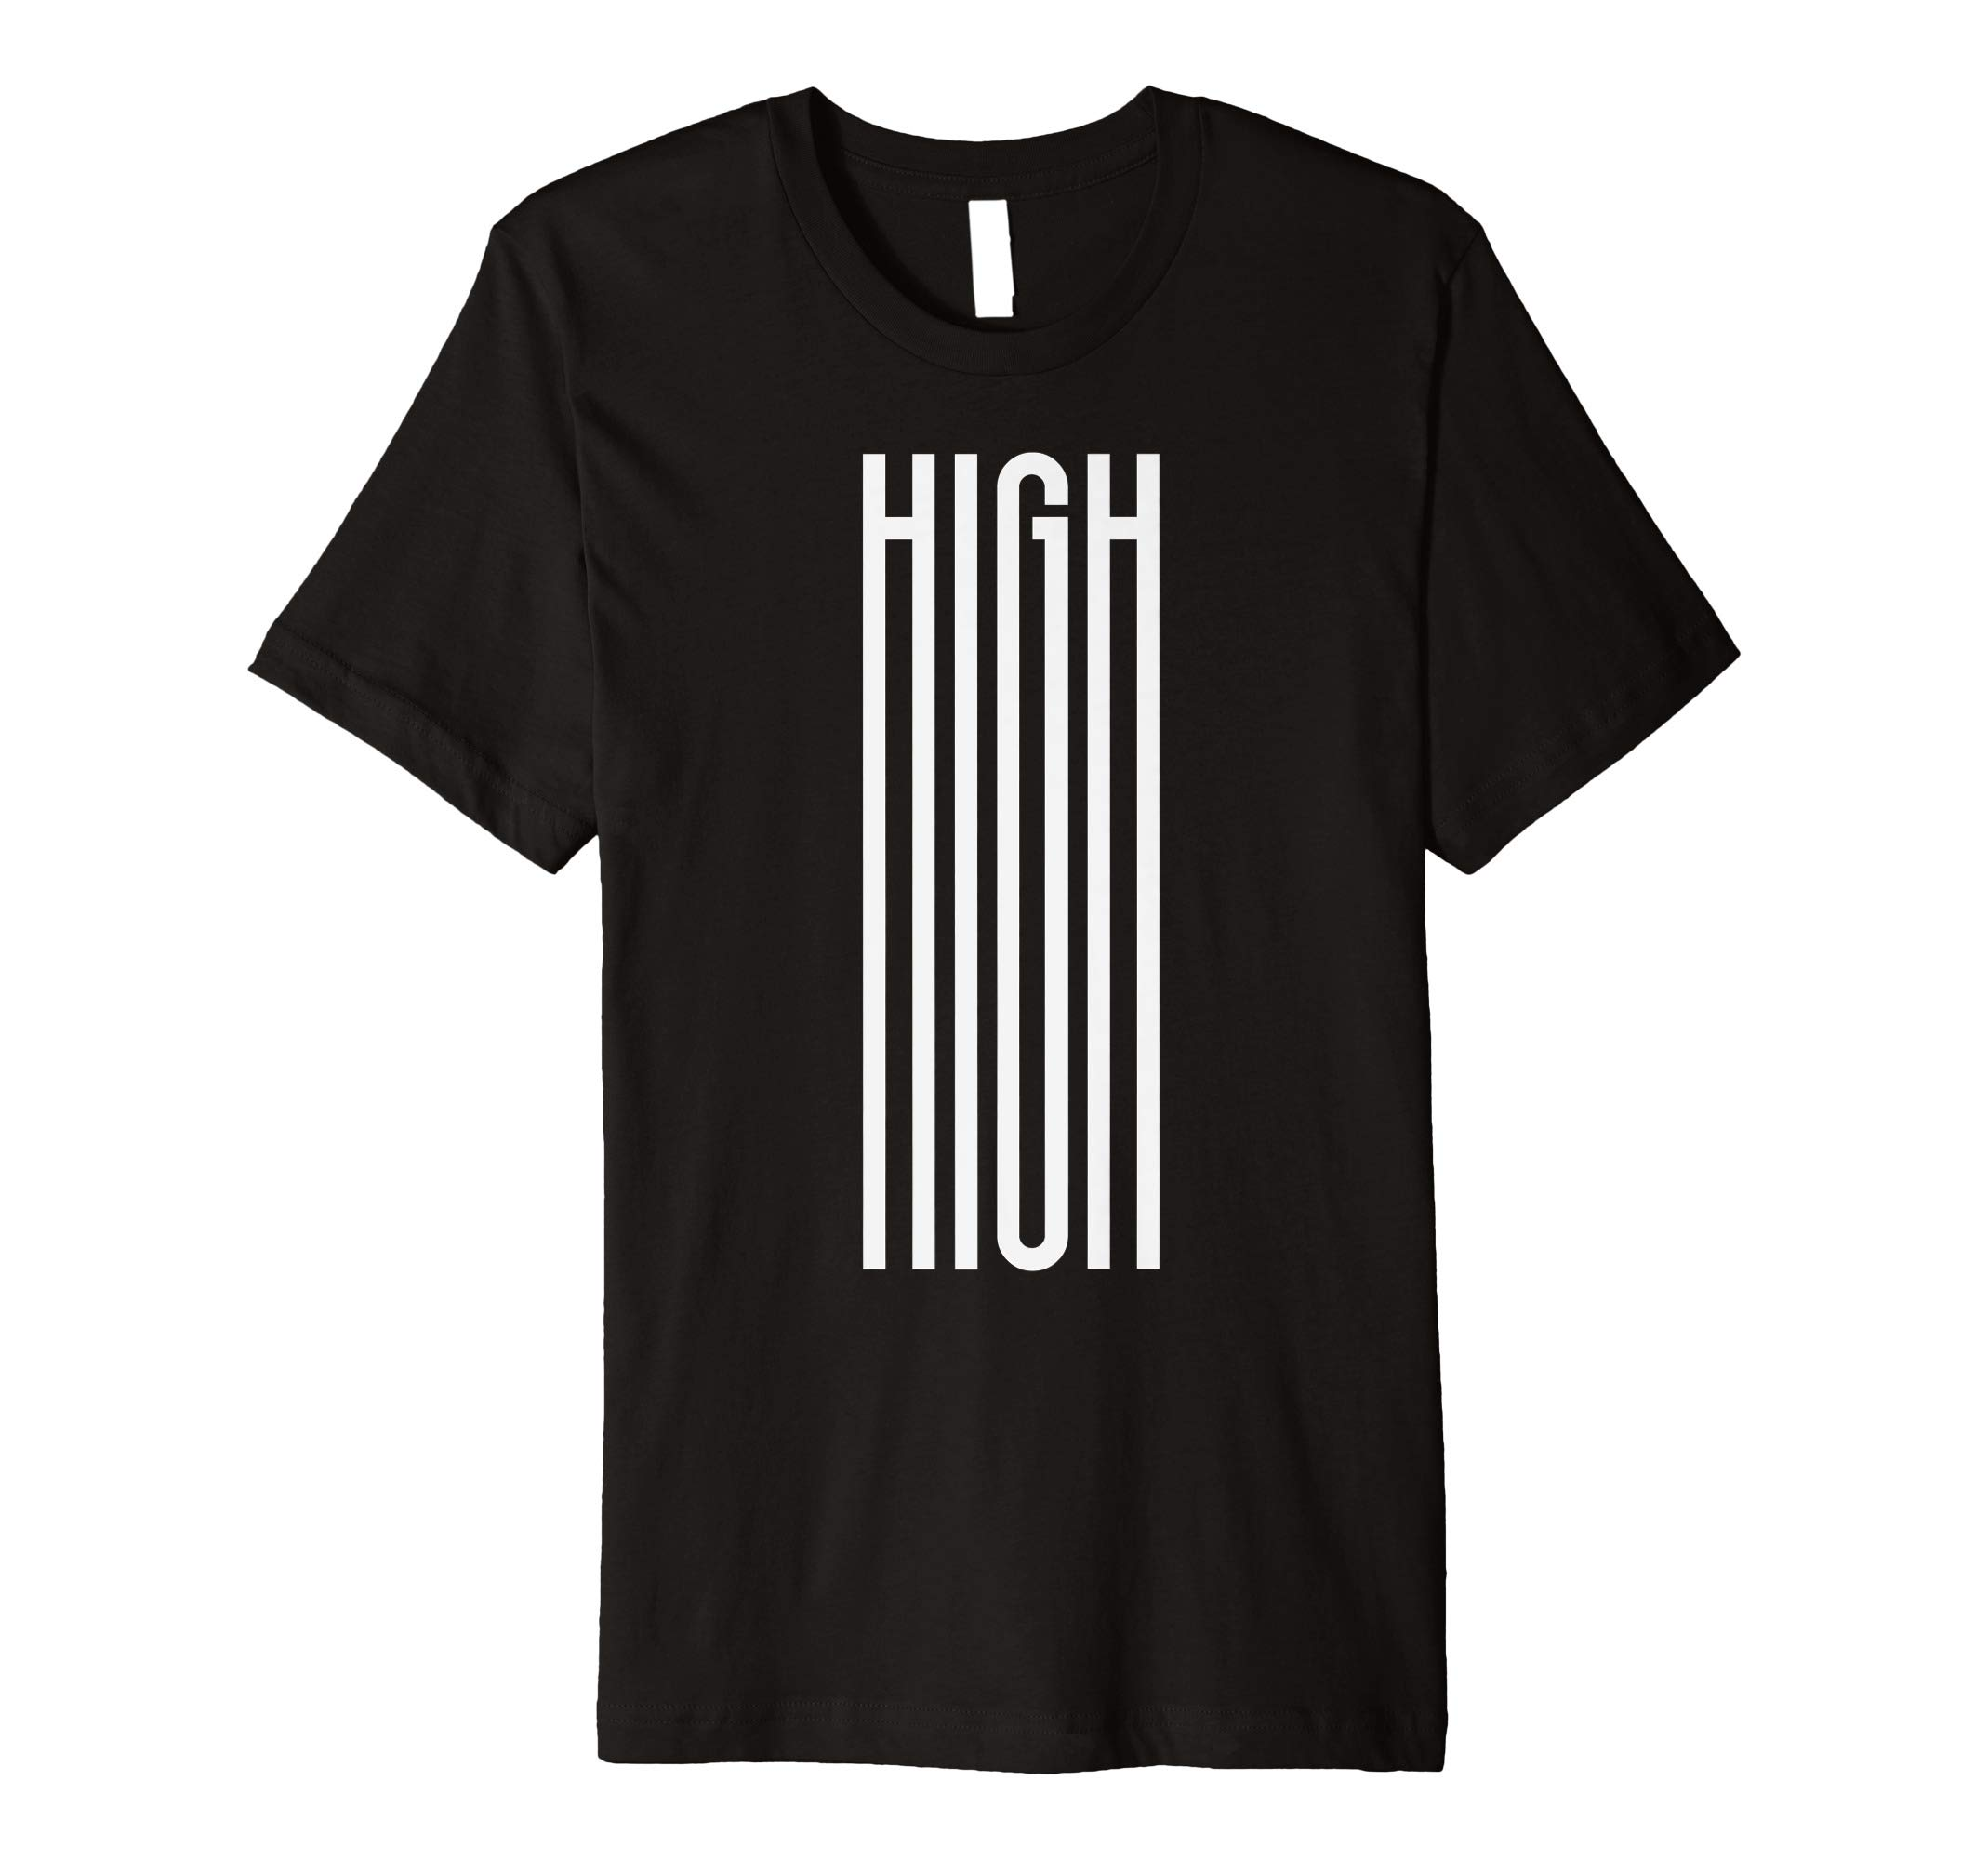 HIGH-420-Funny- Premium T-Shirt